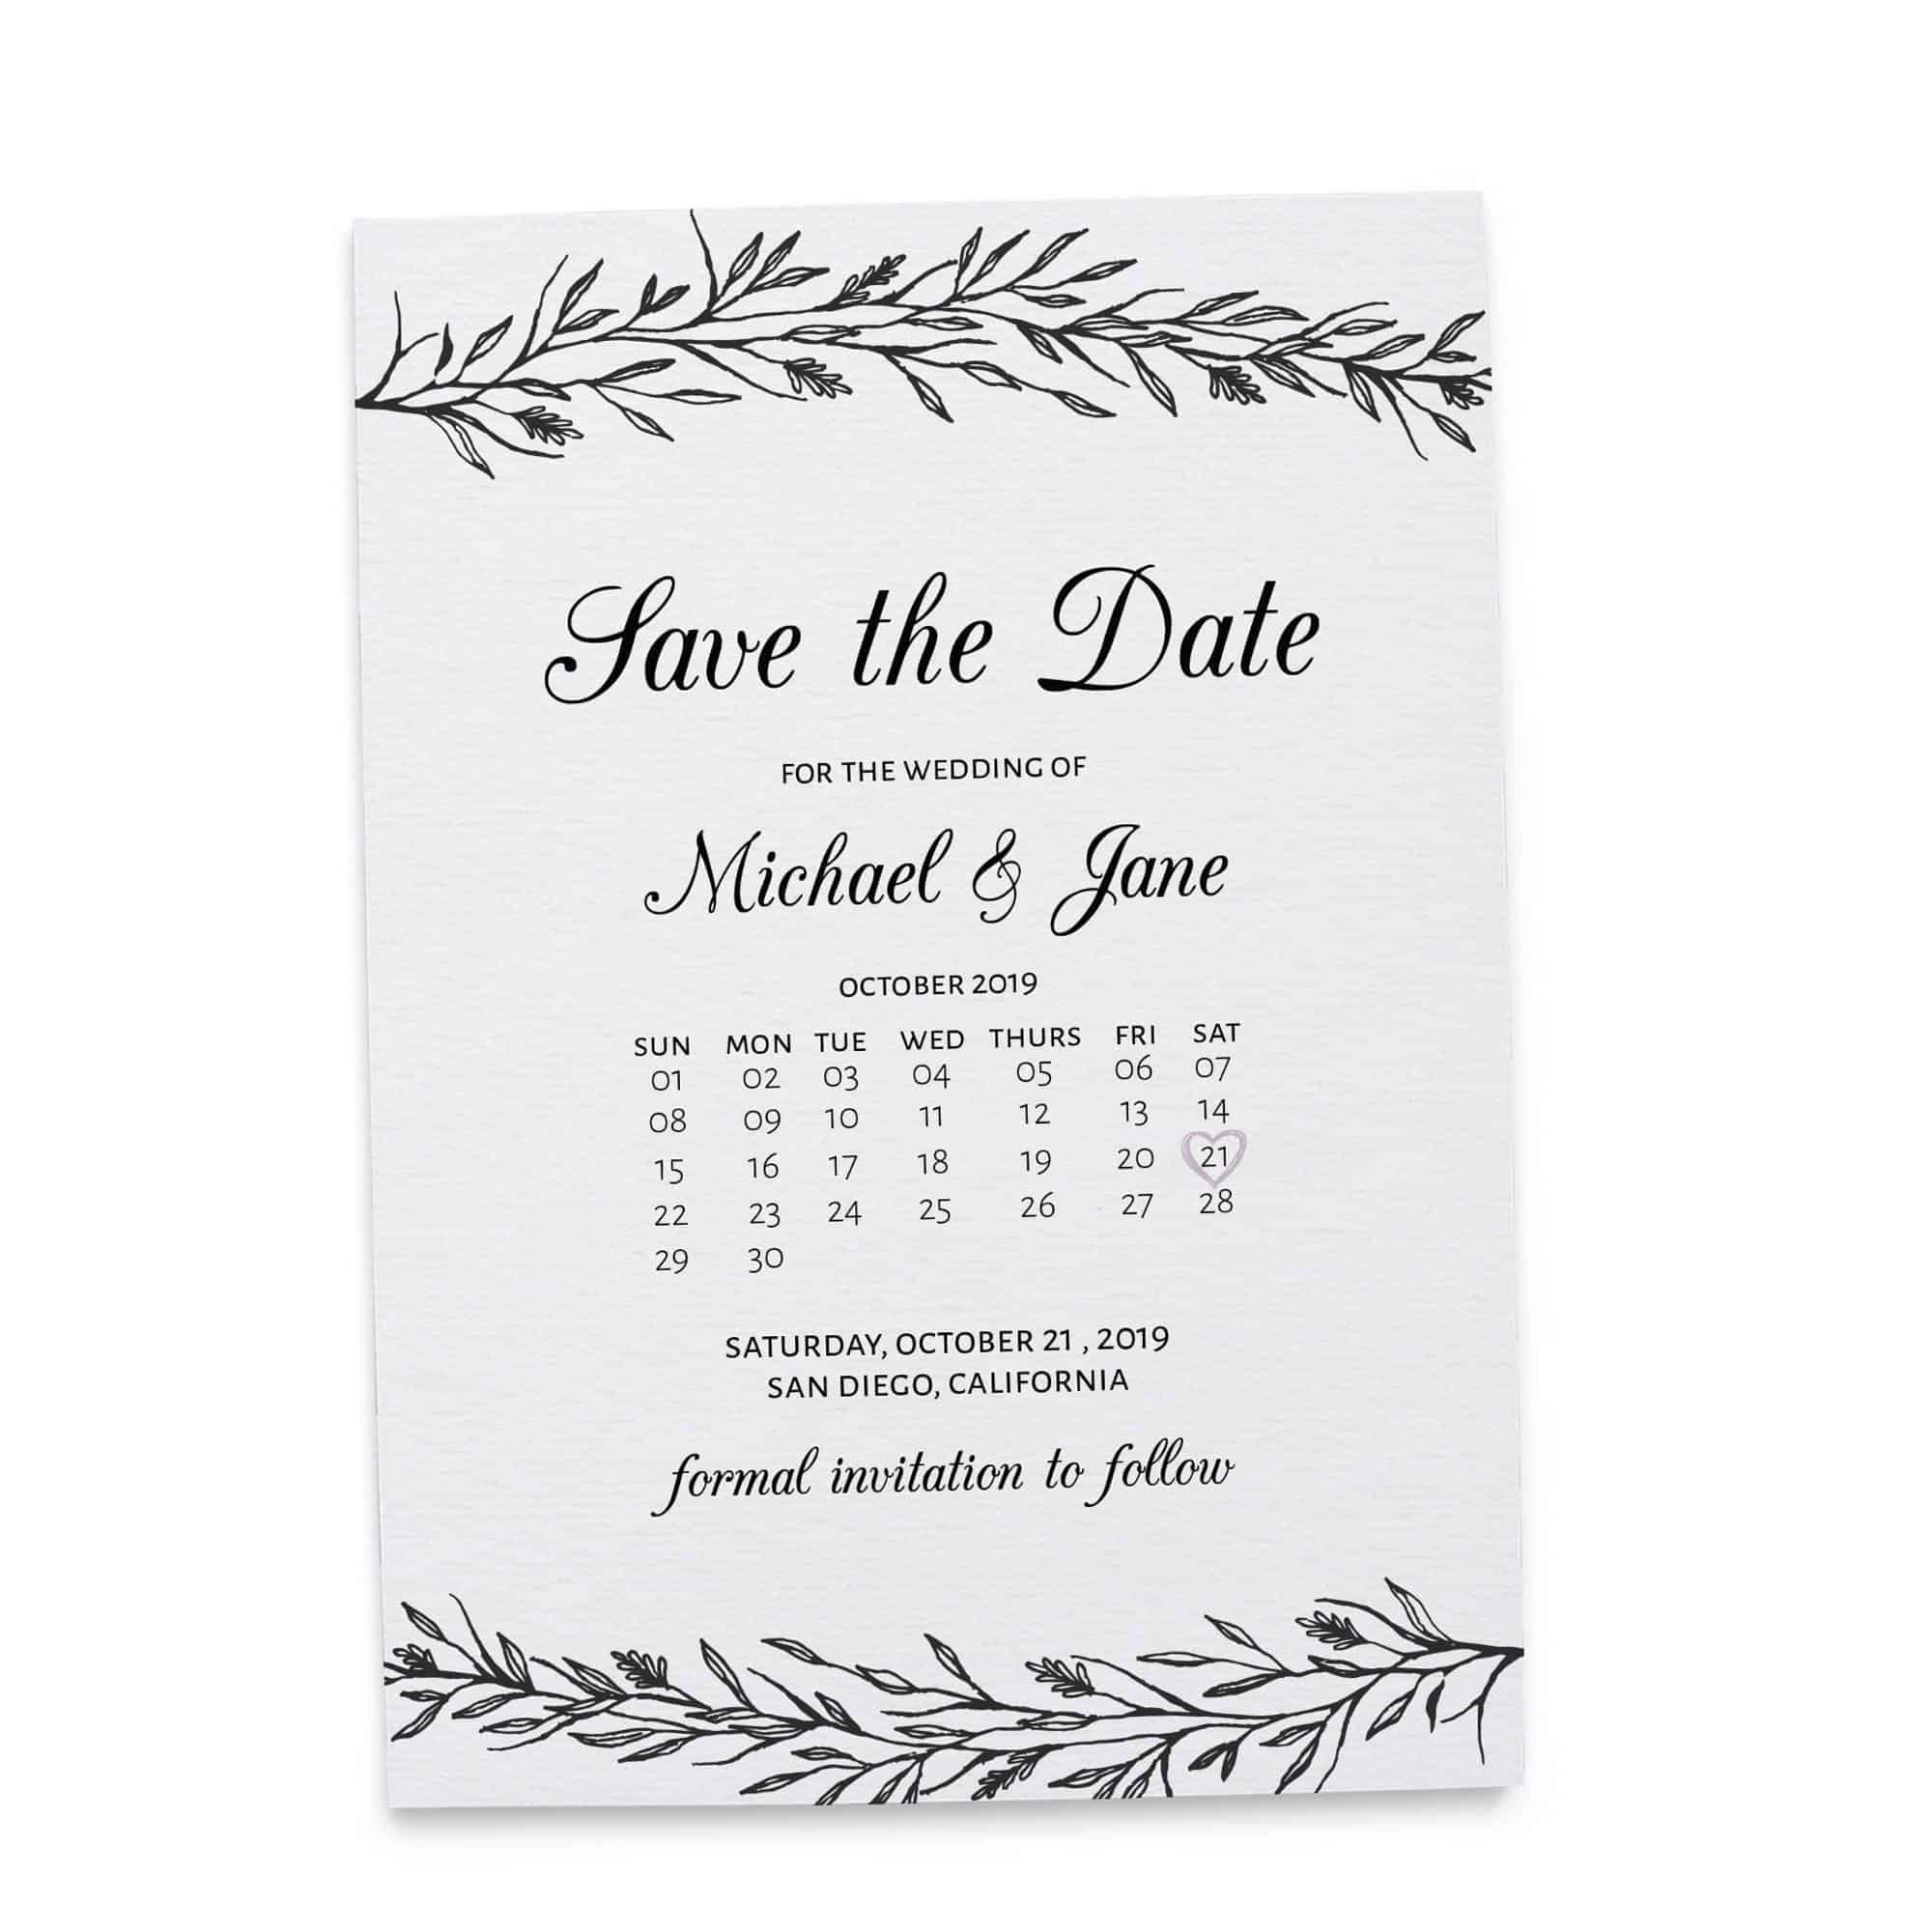 Rustic Save the Date Cards, Simple Calendar Save the Date Cards